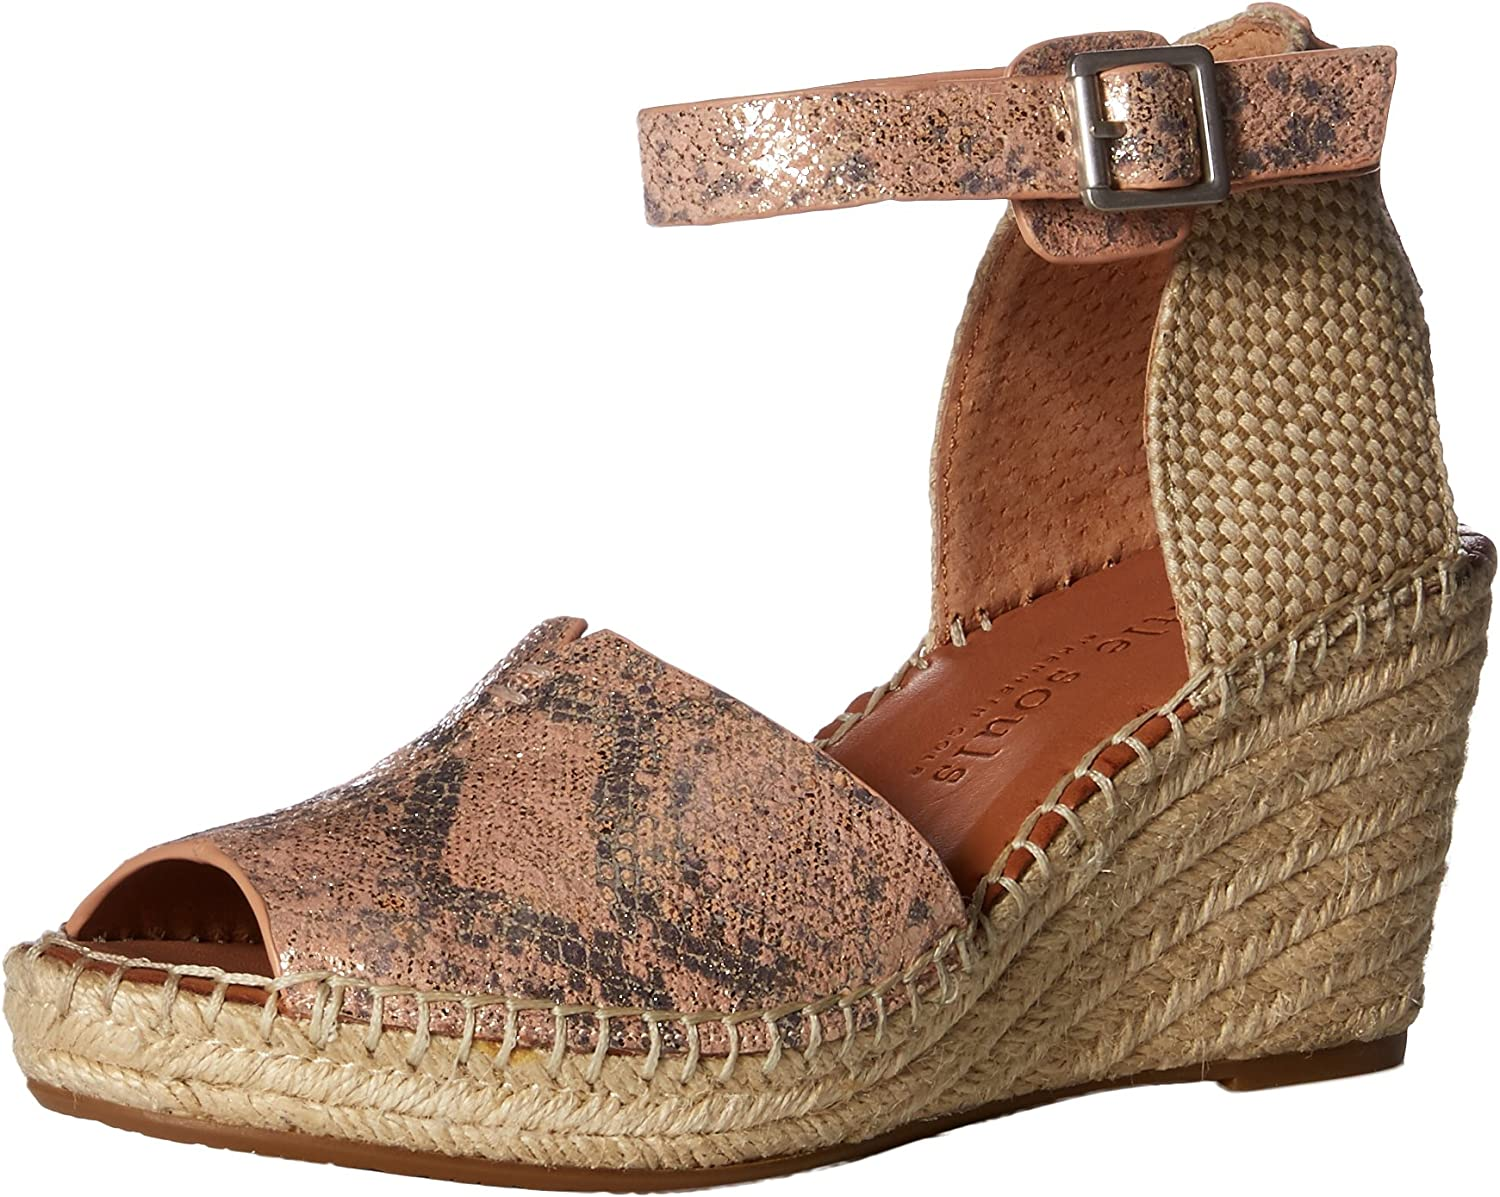 Gentle Souls by Kenneth Cole Women's Charli Espadrille Wedge Sandal Sandal